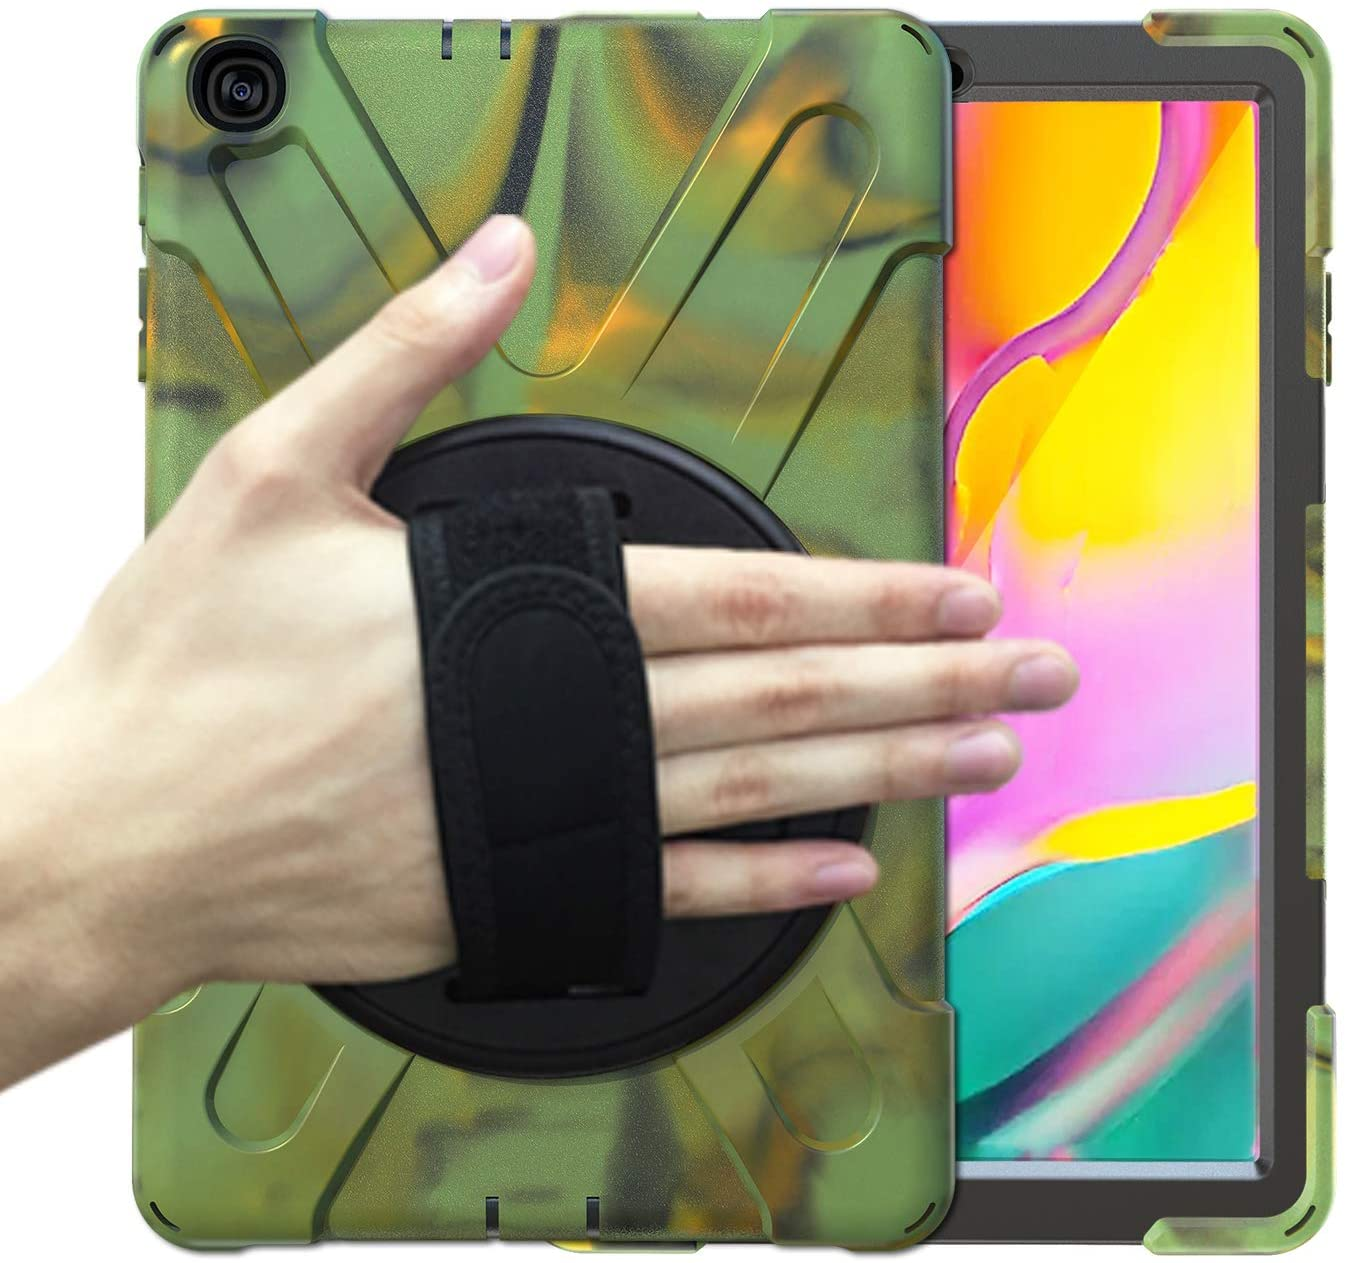 Galaxy Tab A 10.1 2019 T510/T515 Case, KIQ Shockproof Rugged Hybrid Armor Heavy Duty Military Full-Body Protection Case Cover for Samsung Galaxy Tab A 10.1 SM-T510 SM-T515 (Shield Camouflage)